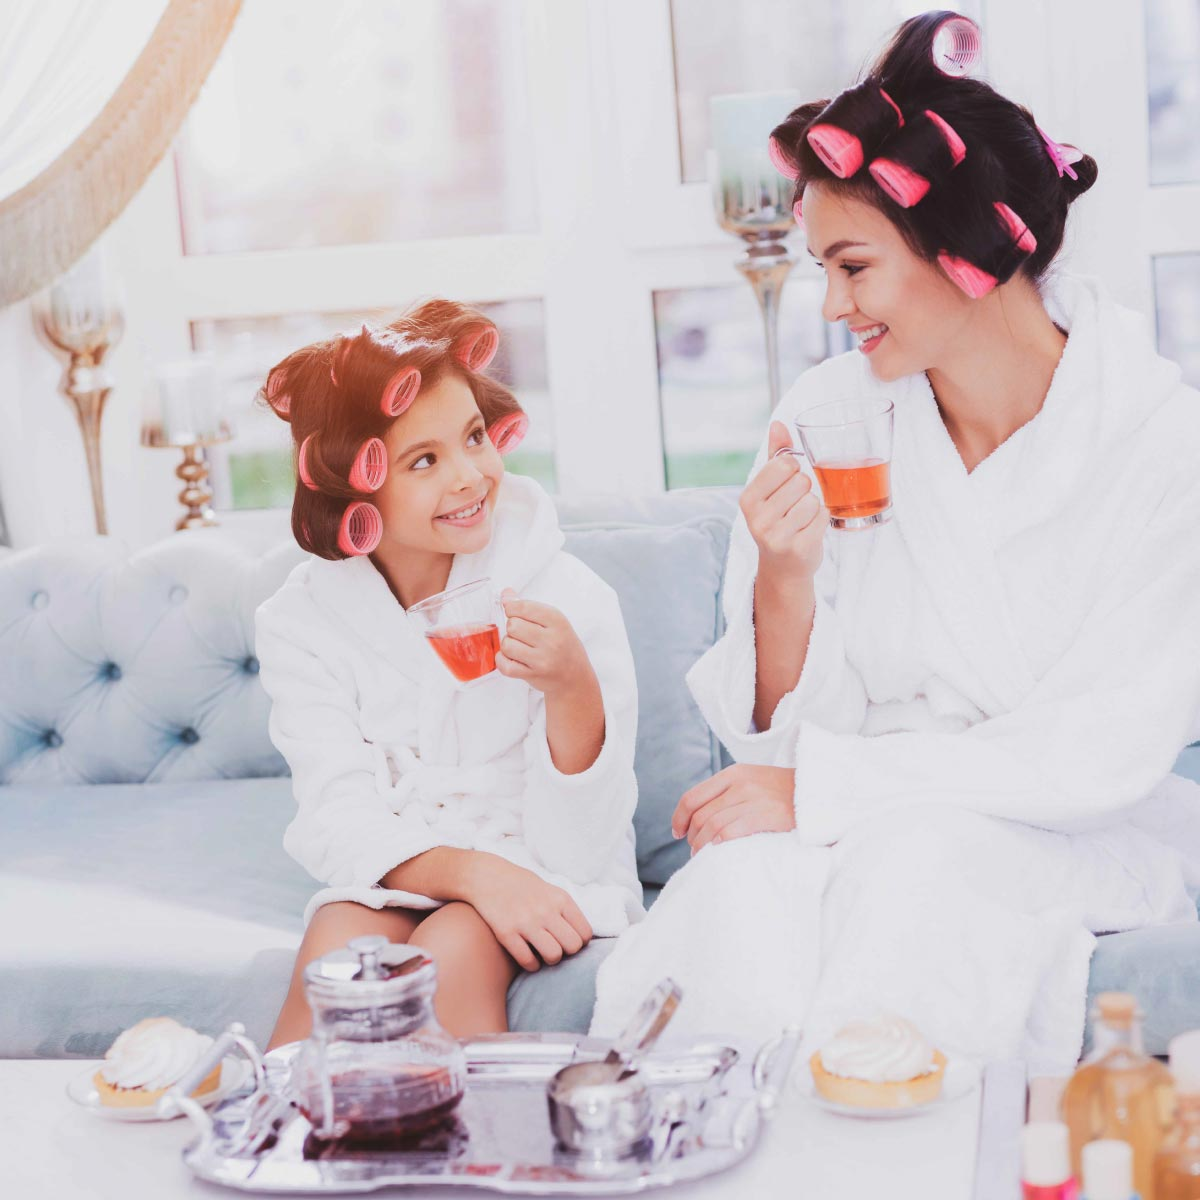 19-great-ideas-for-mothers-day-salon-promos - Utopia Salon & Day